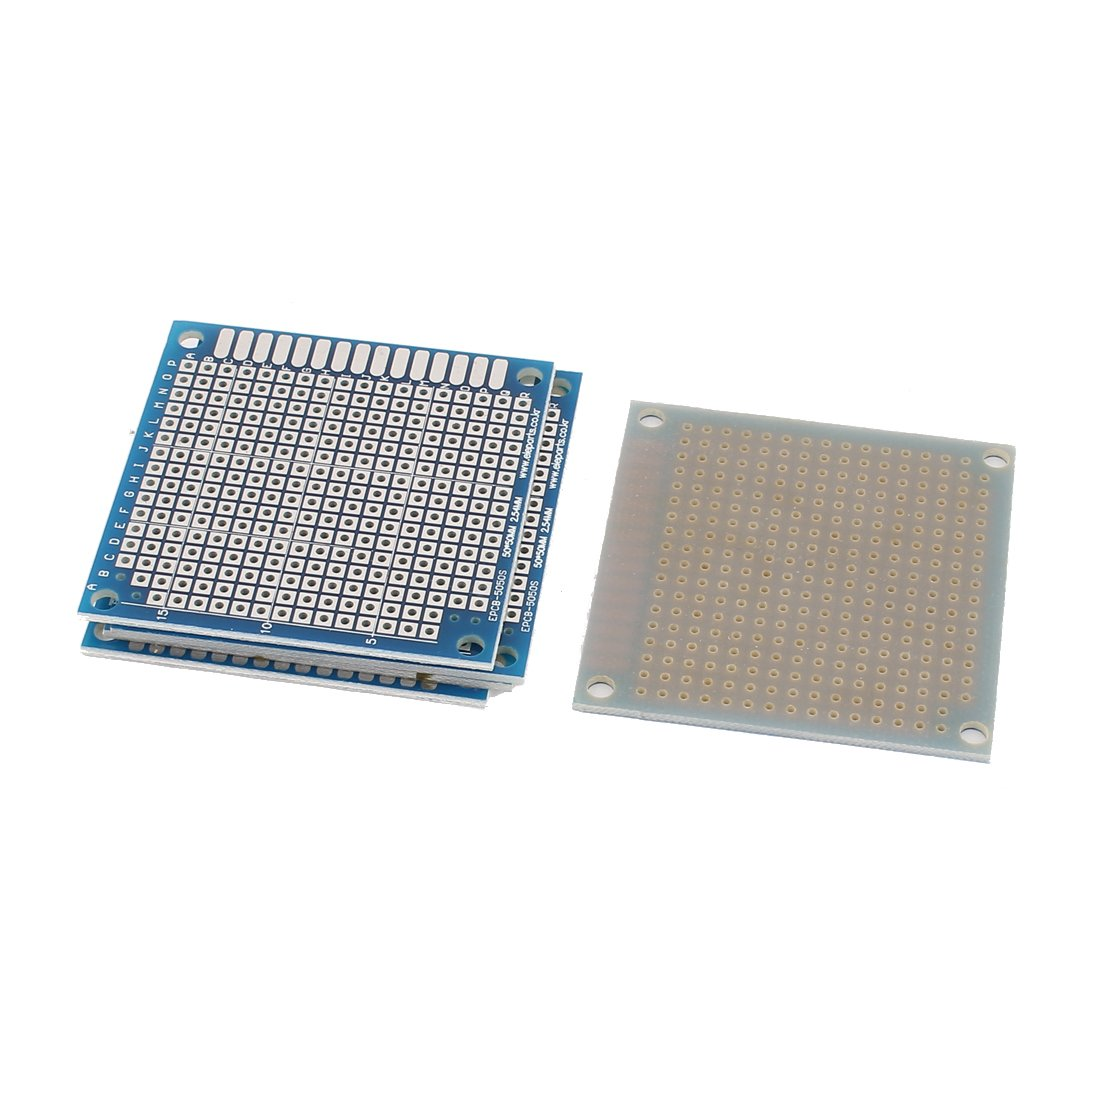 amazoncom aexit 5pcs single sided prototyping boards pcb printed